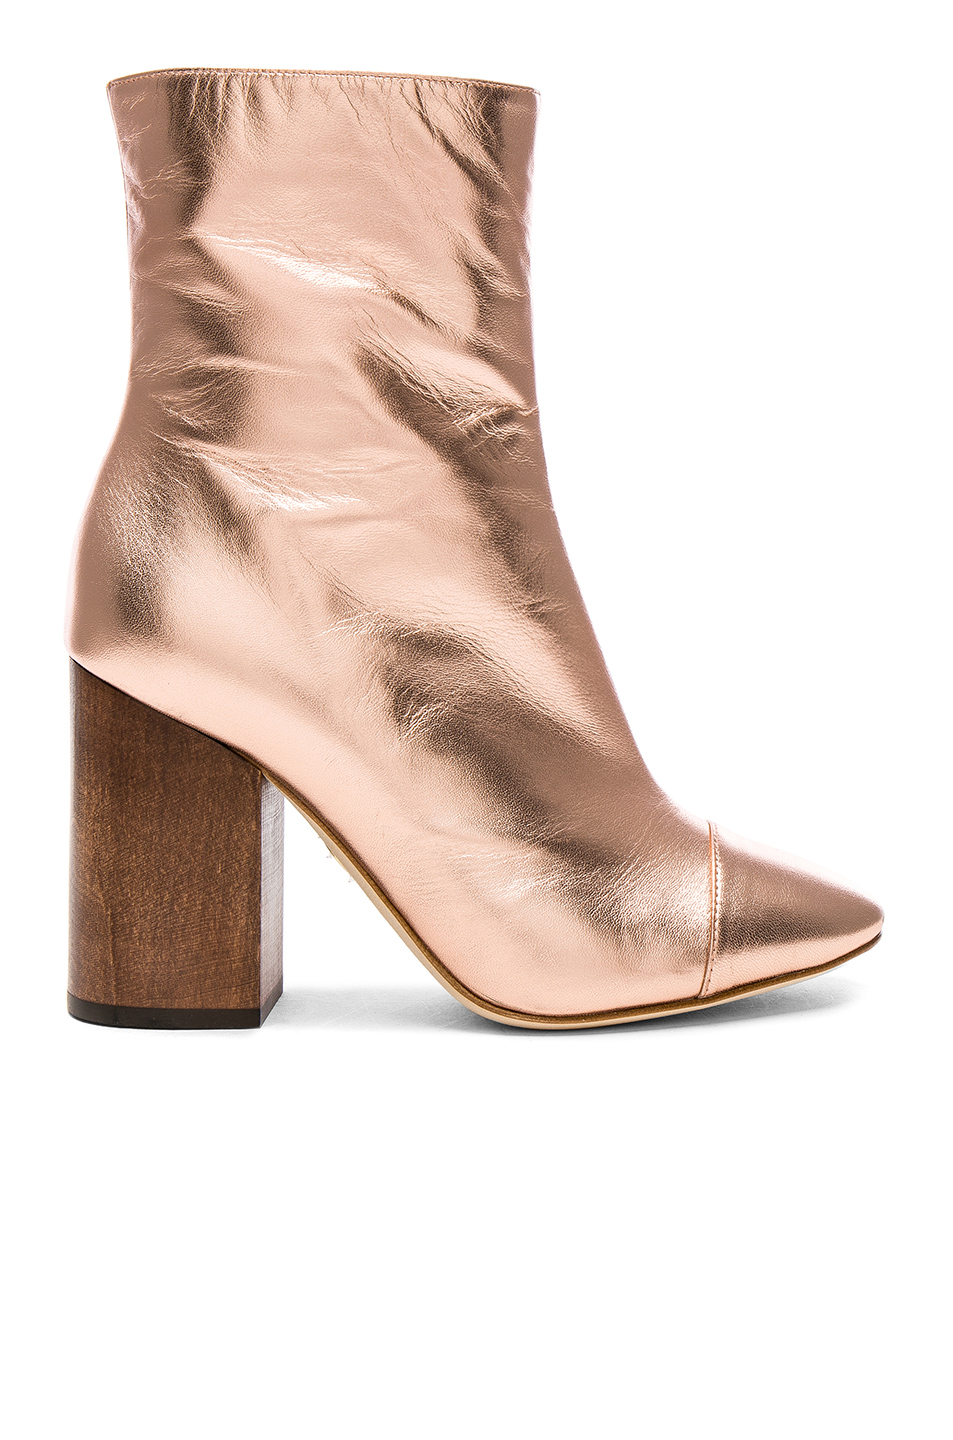 Brother Vellies Leather Bianca Boots in Pink,Metallics